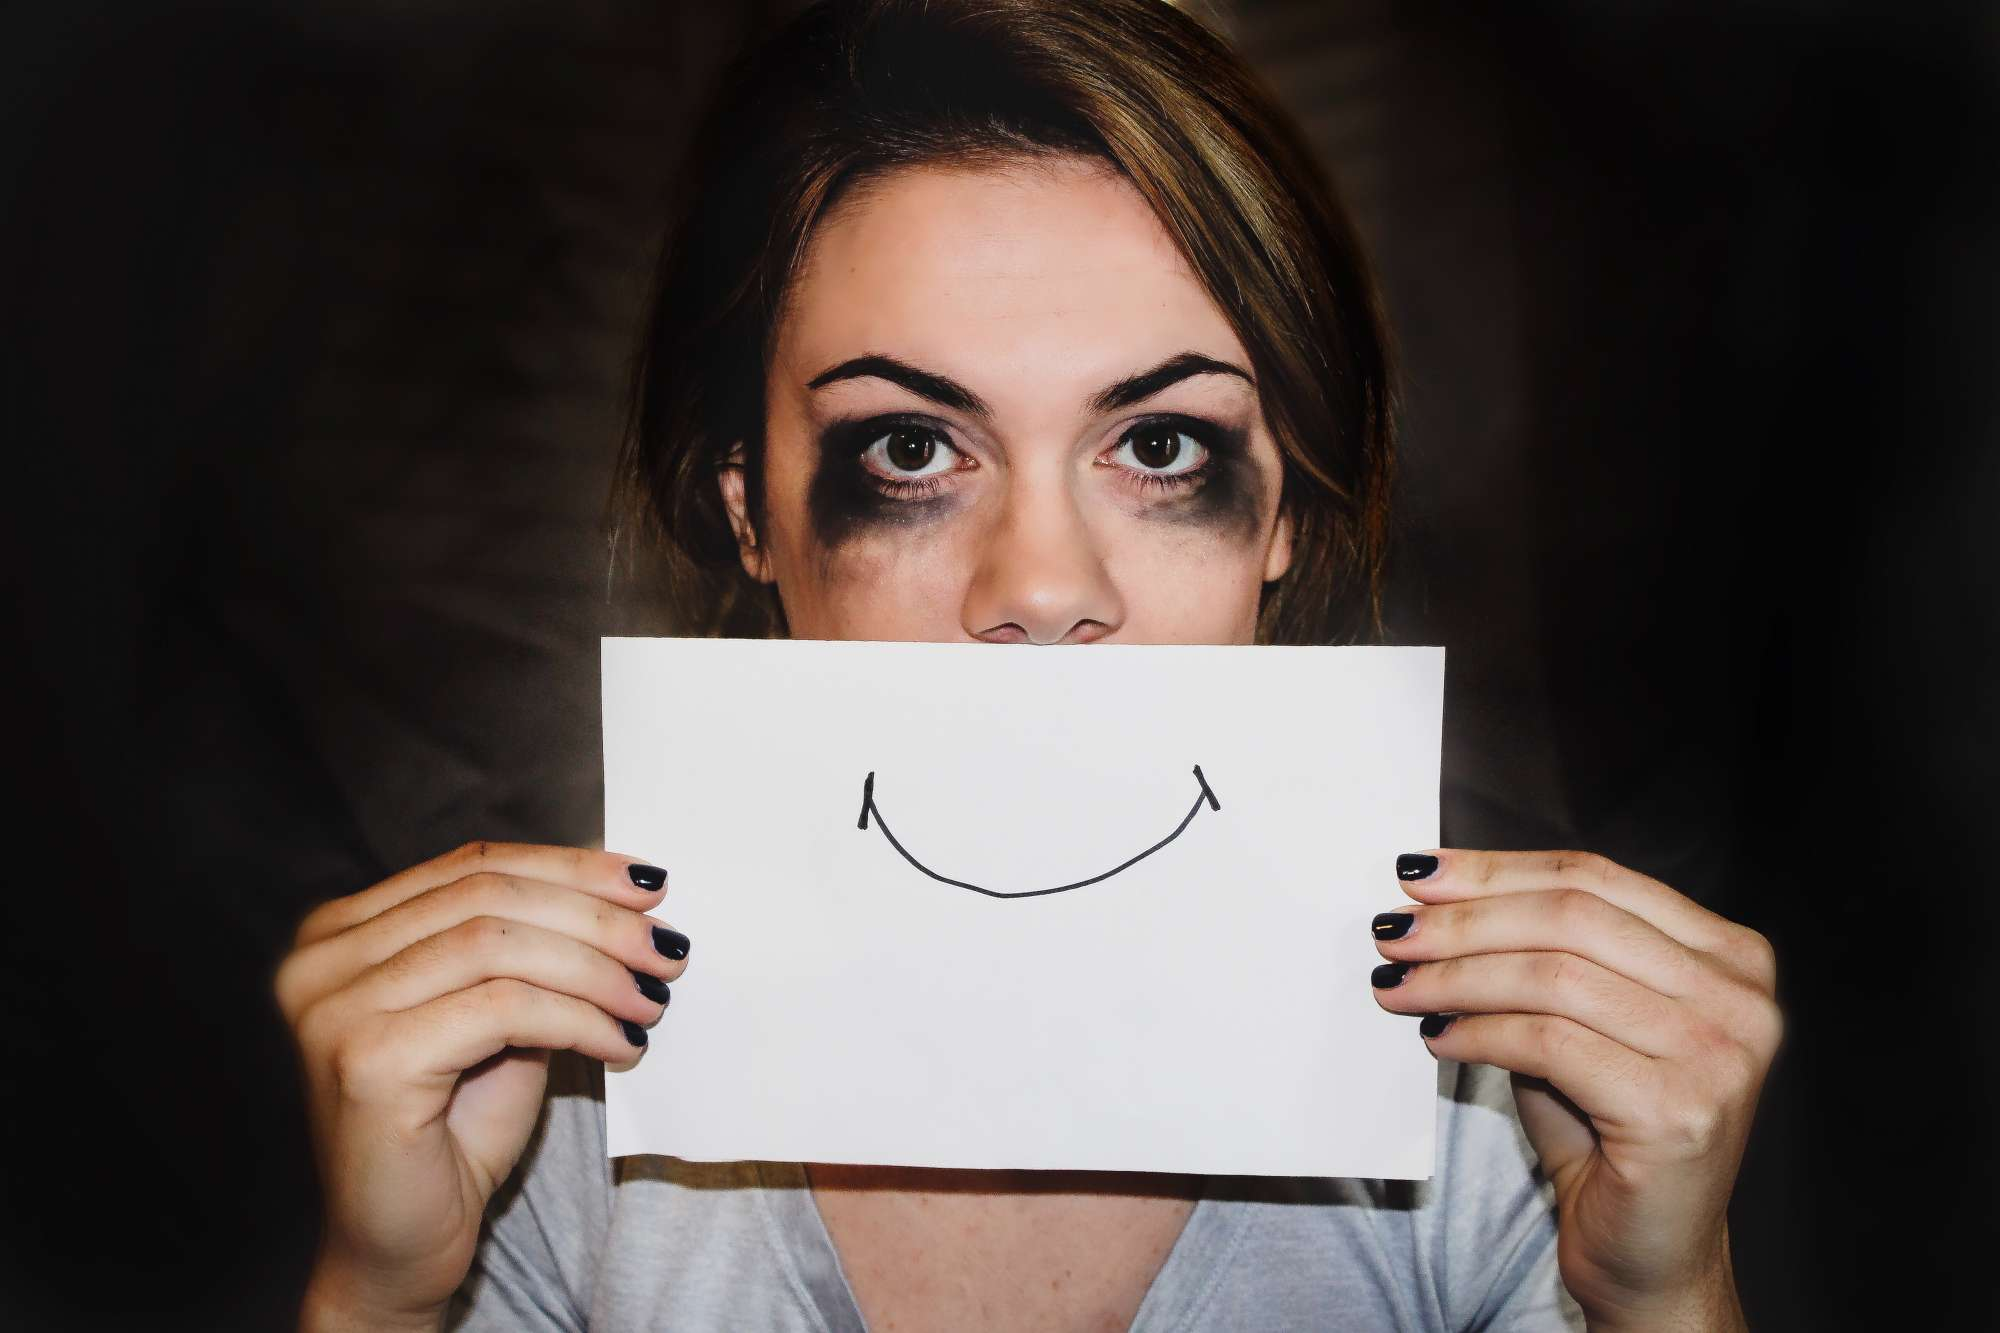 Woman holding a sad face on paper